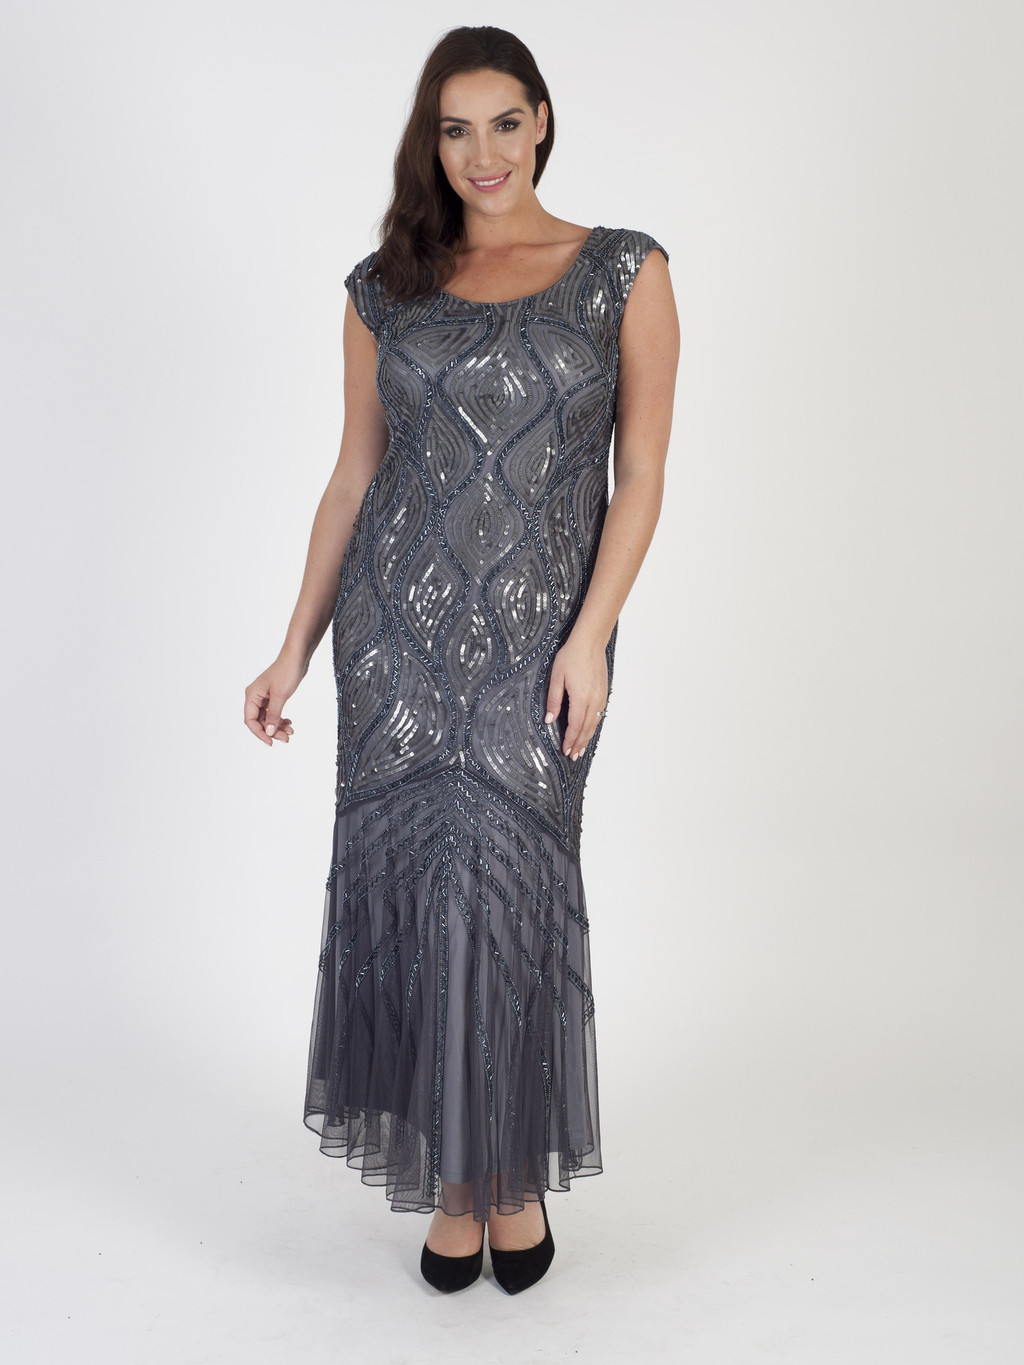 Dark Grey Beaded Mesh Dress (Pre Order October 27th) - neckline: round neck; pattern: plain; sleeve style: sleeveless; style: maxi dress; length: ankle length; predominant colour: mid grey; occasions: evening; fit: body skimming; fibres: polyester/polyamide - 100%; sleeve length: sleeveless; pattern type: fabric; texture group: jersey - stretchy/drapey; embellishment: beading; season: a/w 2016